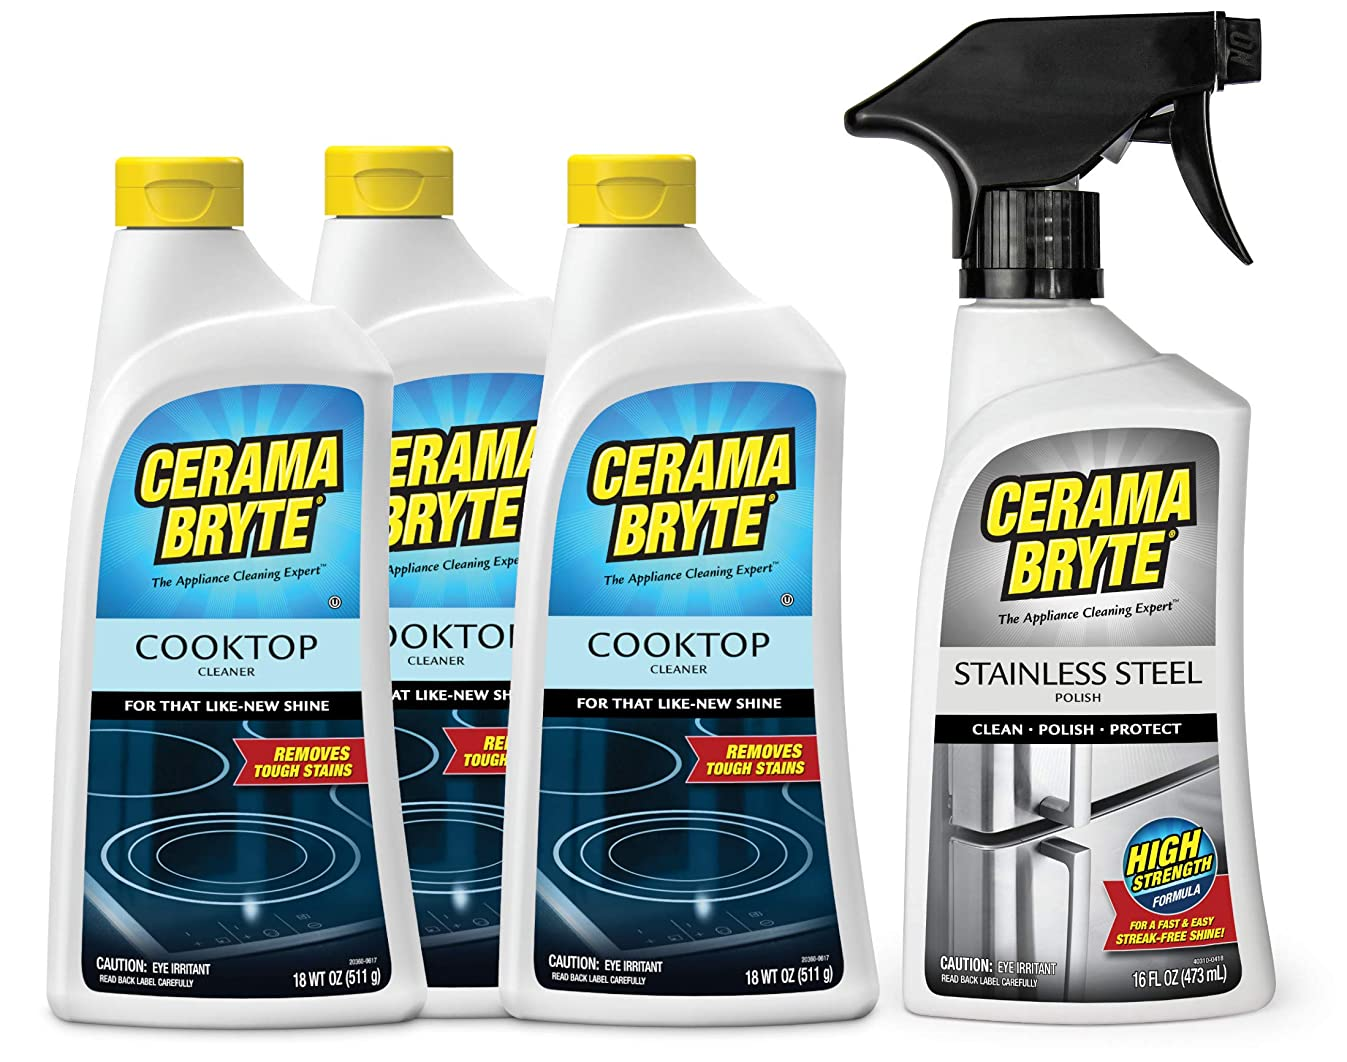 Cerama Bryte Glass Ceramic Cooktop Cleaner, 3-18 Ounce Cooktop Cleaner With Stainless Steel Polish